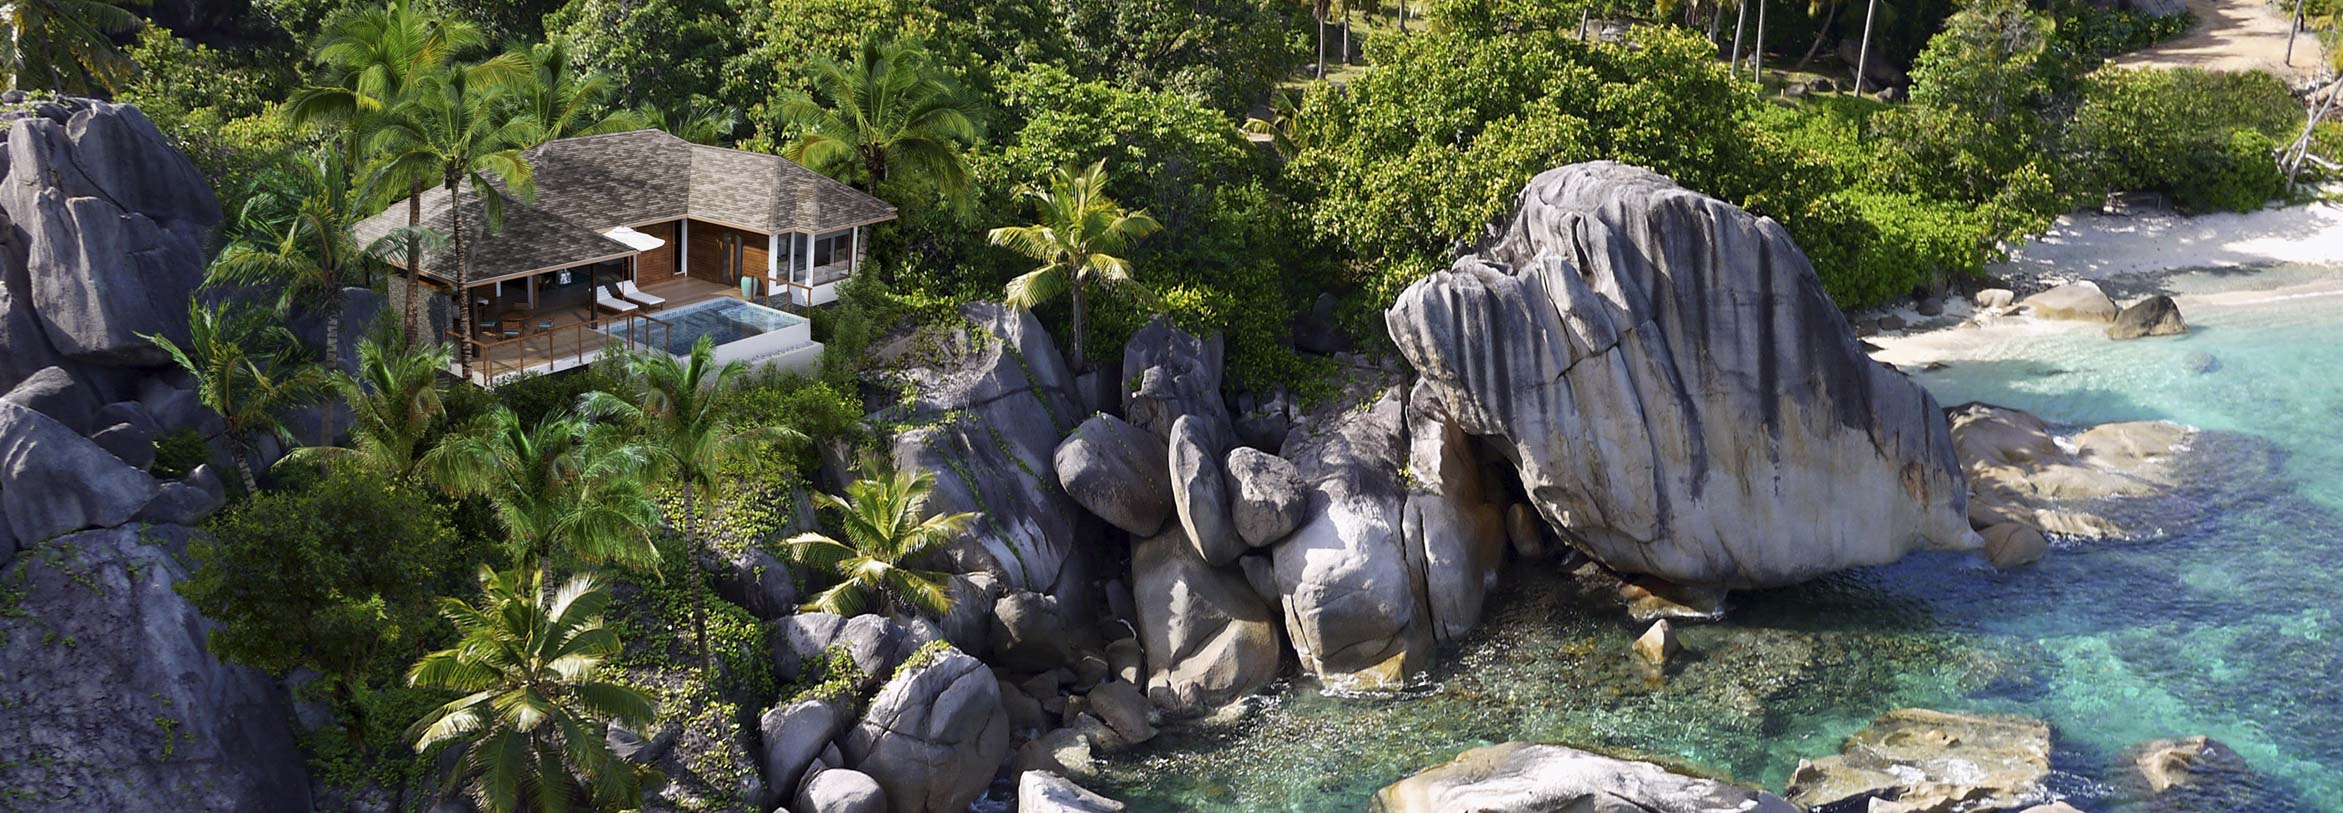 Luxury Escapes at Six Senses Zil Pasyon Seychelles - Lavish Hotels and Resorts